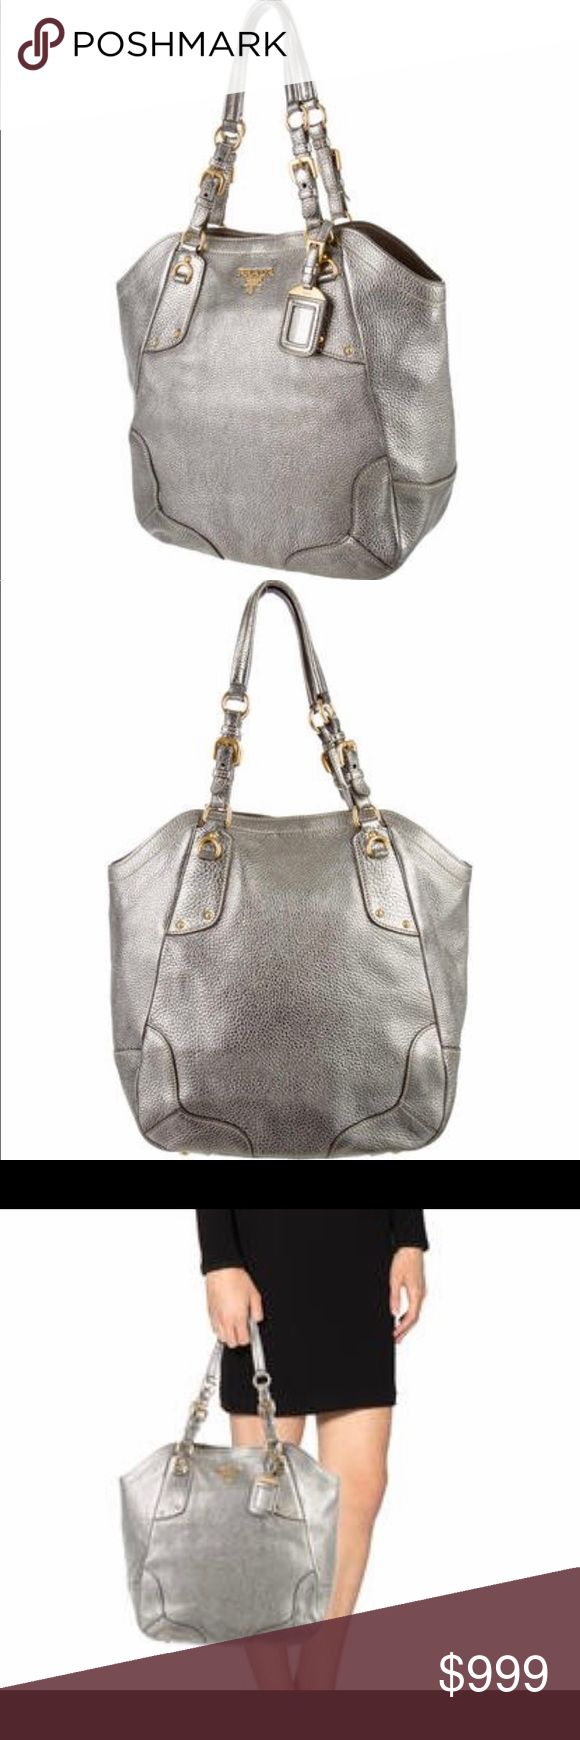 """*AUTHENTIC* Prada Acciaio Vitello Diano Tote Acciaio Vitello Daino leather Prada tote with gold-tone hardware, dual flat shoulder straps, gold-tone logo embellishment at front face, beige jacquard nylon lining, dual pockets at interior walls; one with zip closure and magnetic snap closure at top. Shoulder Strap Drop: 8.5"""", Height: 13"""", Width: 15"""" Depth: 5.5"""", Condition: Very Good. Faint surface scratches at hardware; faint scuffing at corners; faint marking at interior. Prada Bags Totes"""